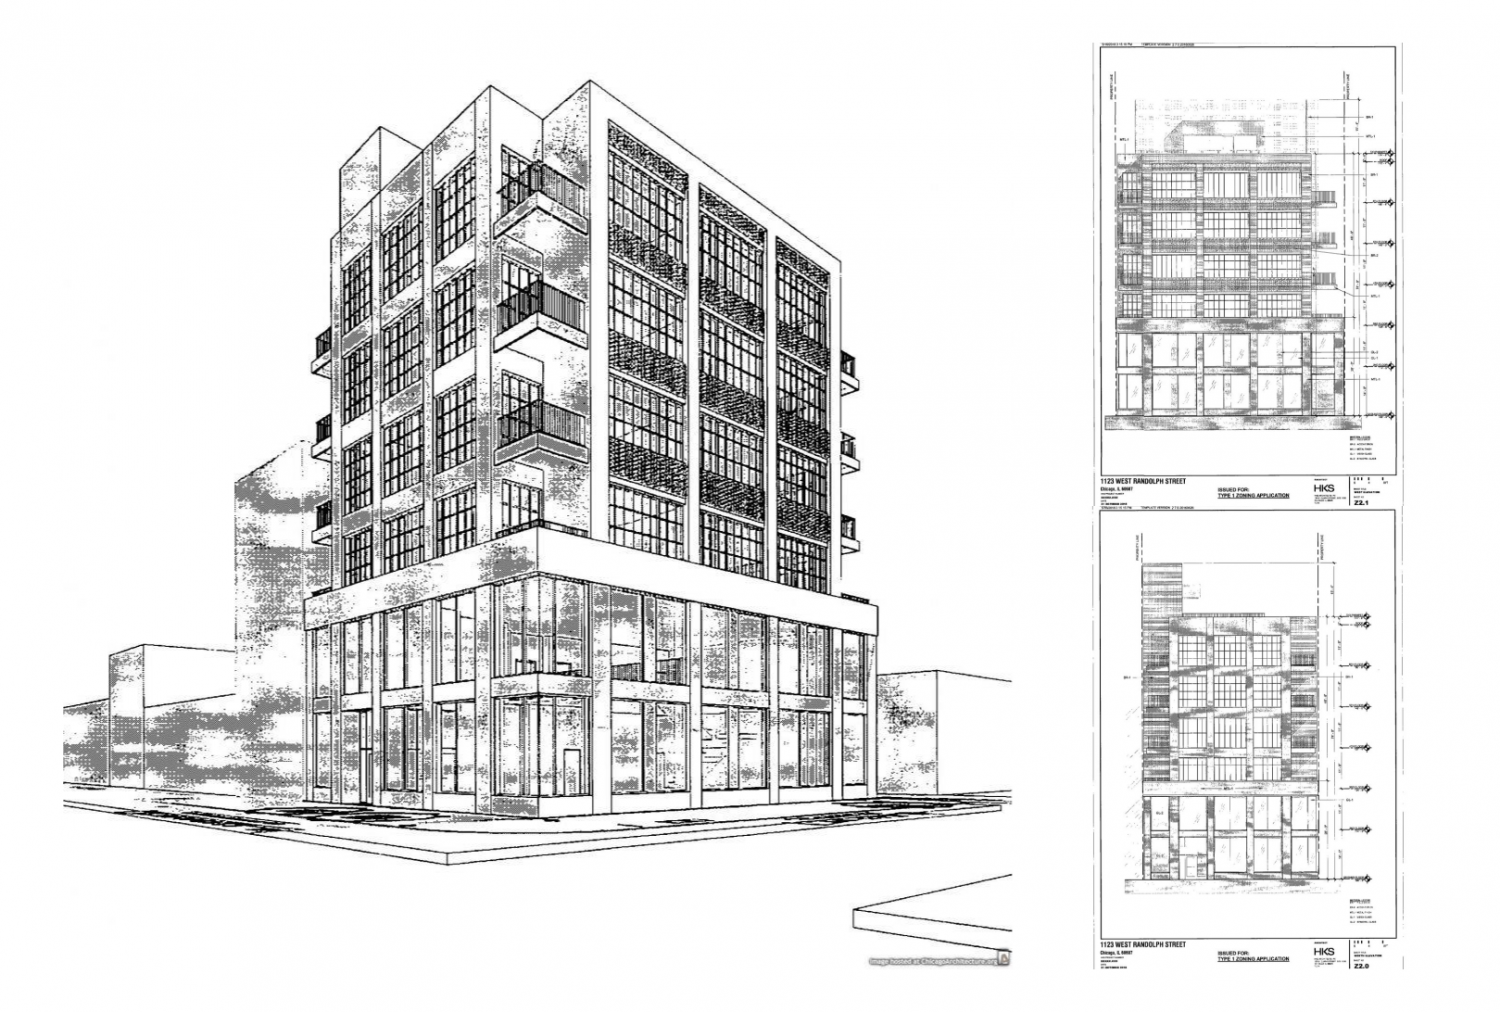 Perspective and elevation drawings of 1123 W Randolph Street